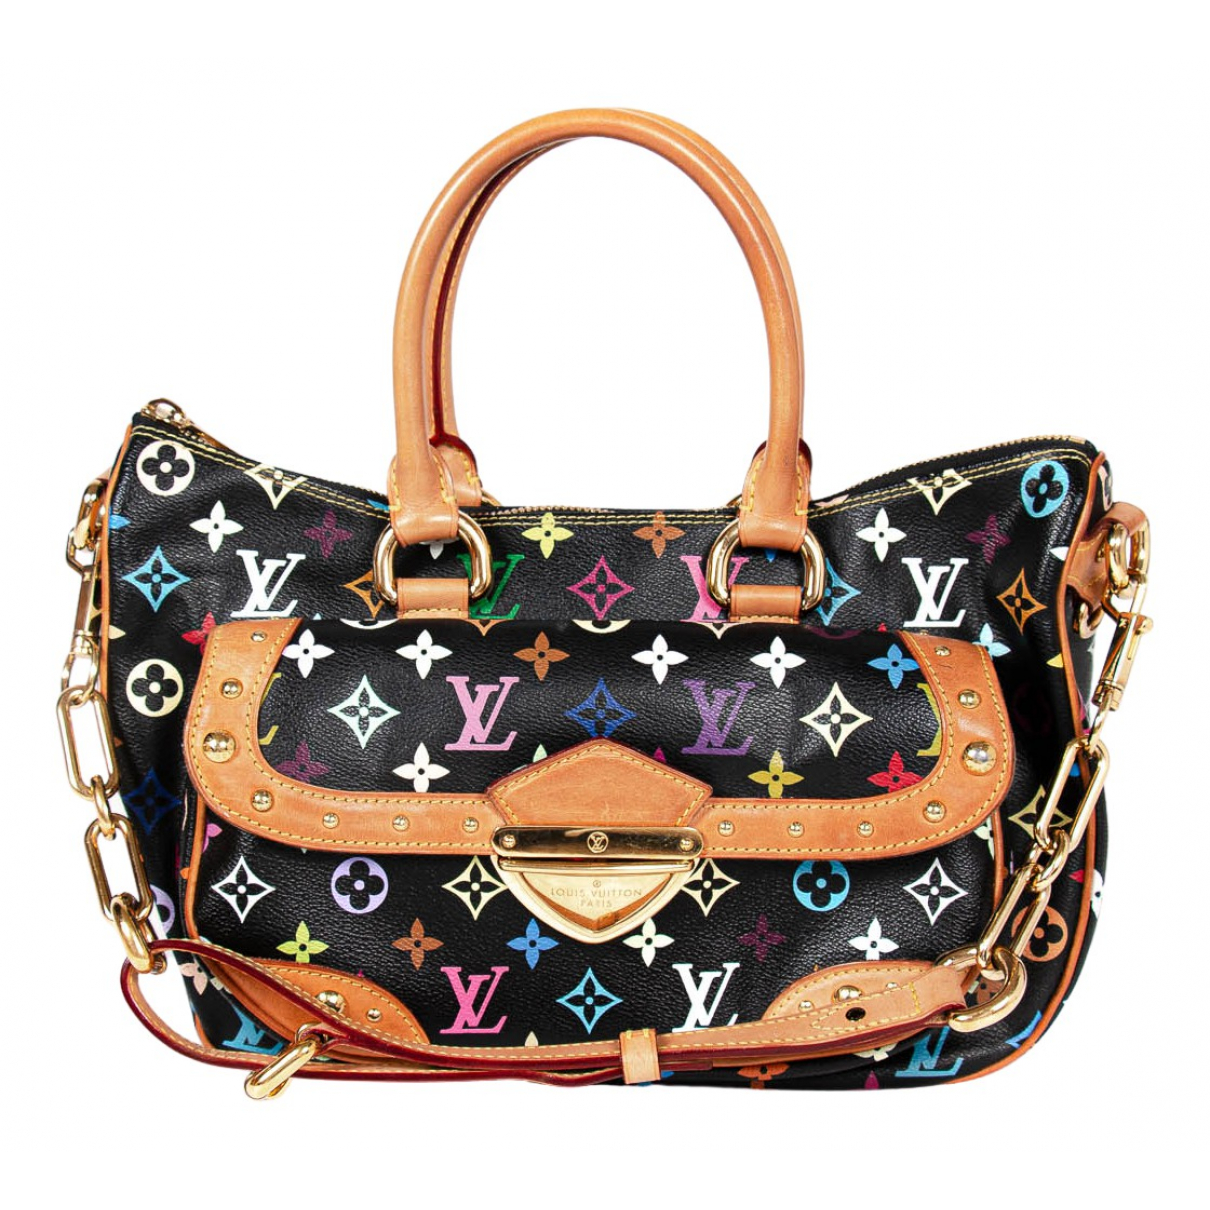 Louis Vuitton Rita Multicolour Cloth handbag for Women N